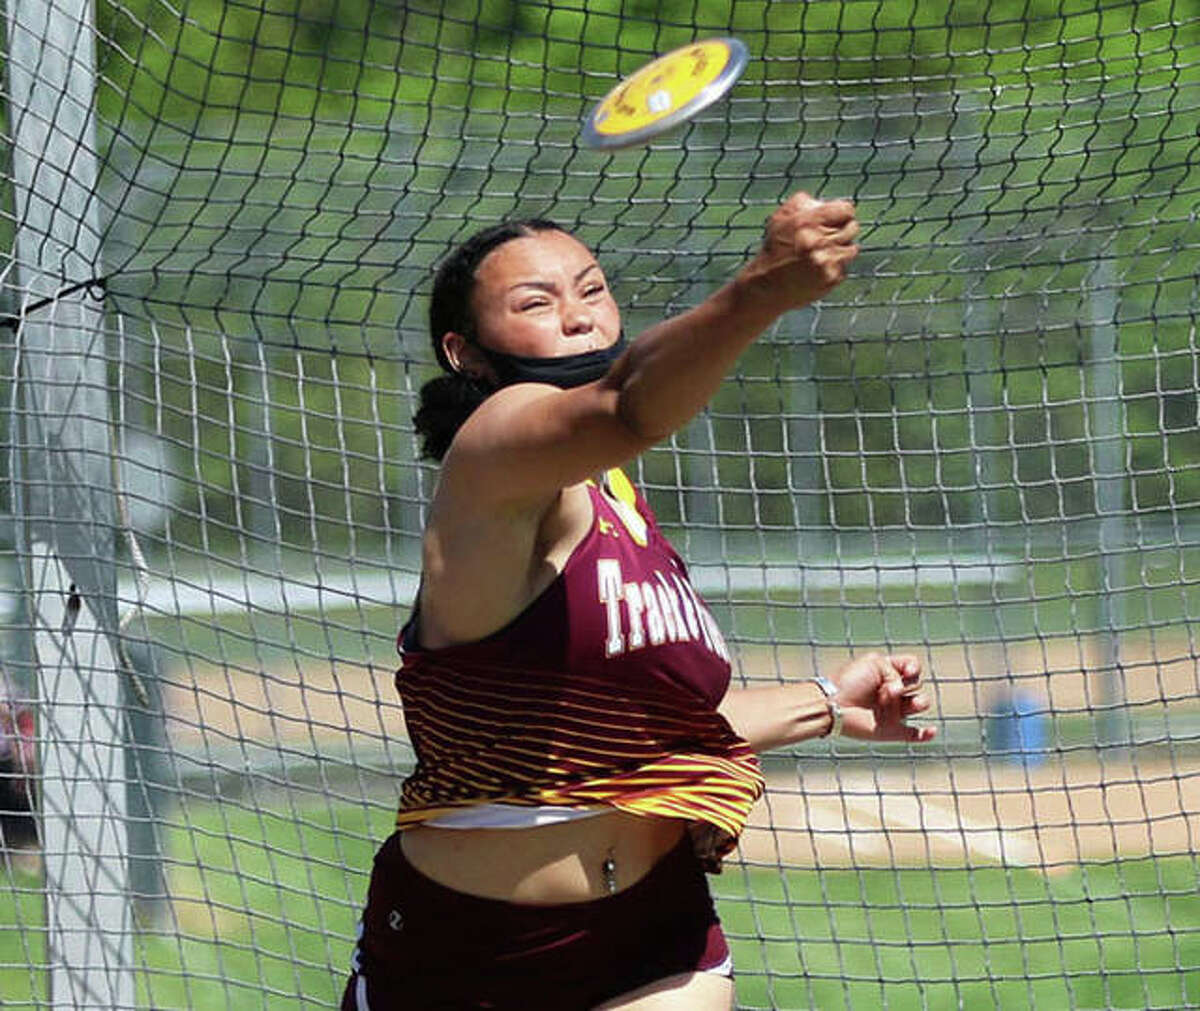 EA-WR senior Jayden Ulrich throws the discus at the Triad Invitational on May 5 in Troy. Ulrich, the Class 2A state champion in both the discus and shot put, is the 2021 Telegraph Small-Schools Girls Track Athlete of the Year.